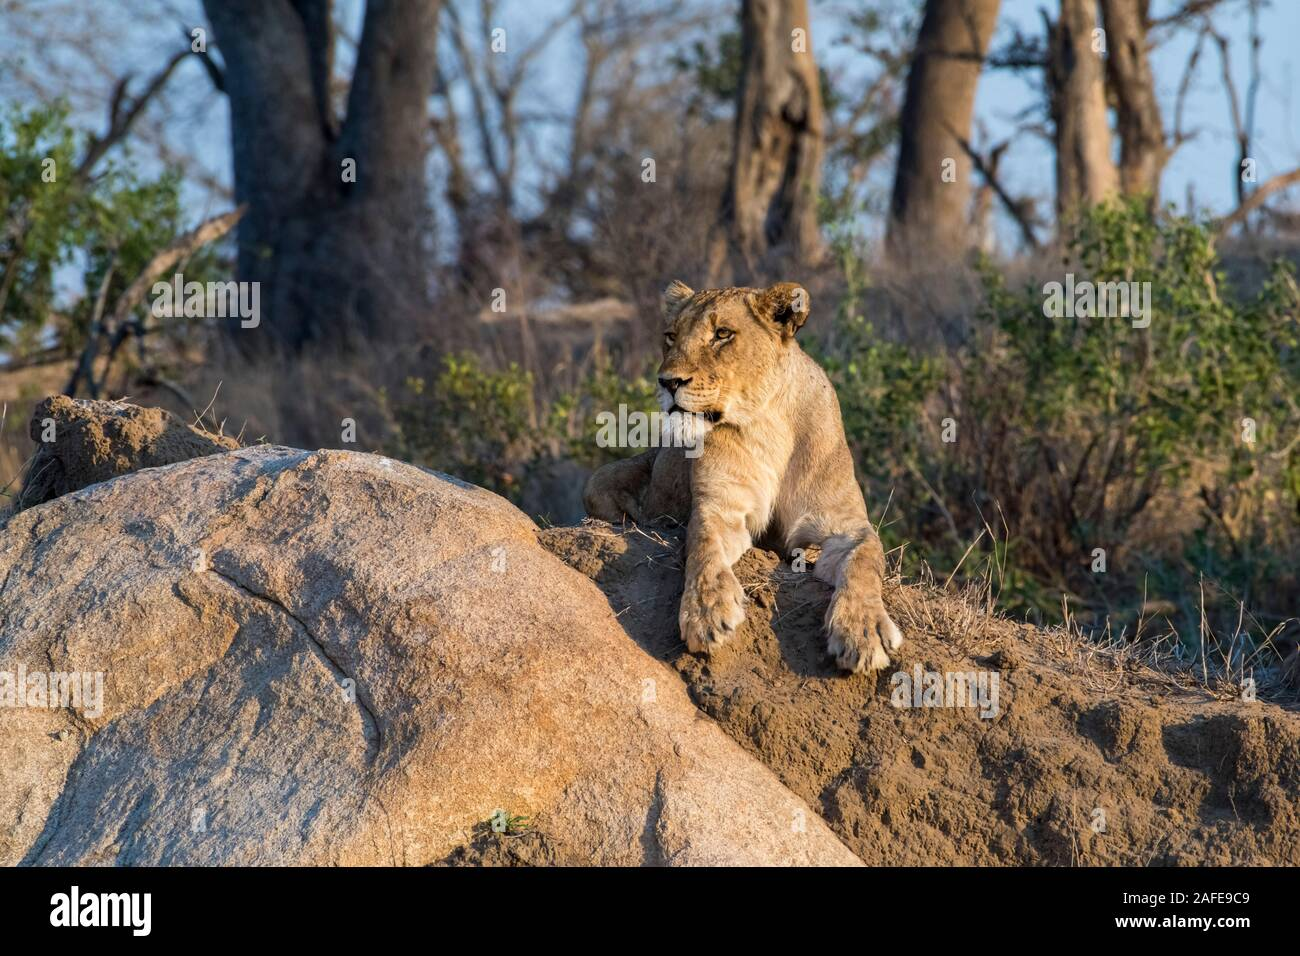 Lioness Raising her Face into the Rising Sun in Mala Mala, South Africa Stock Photo